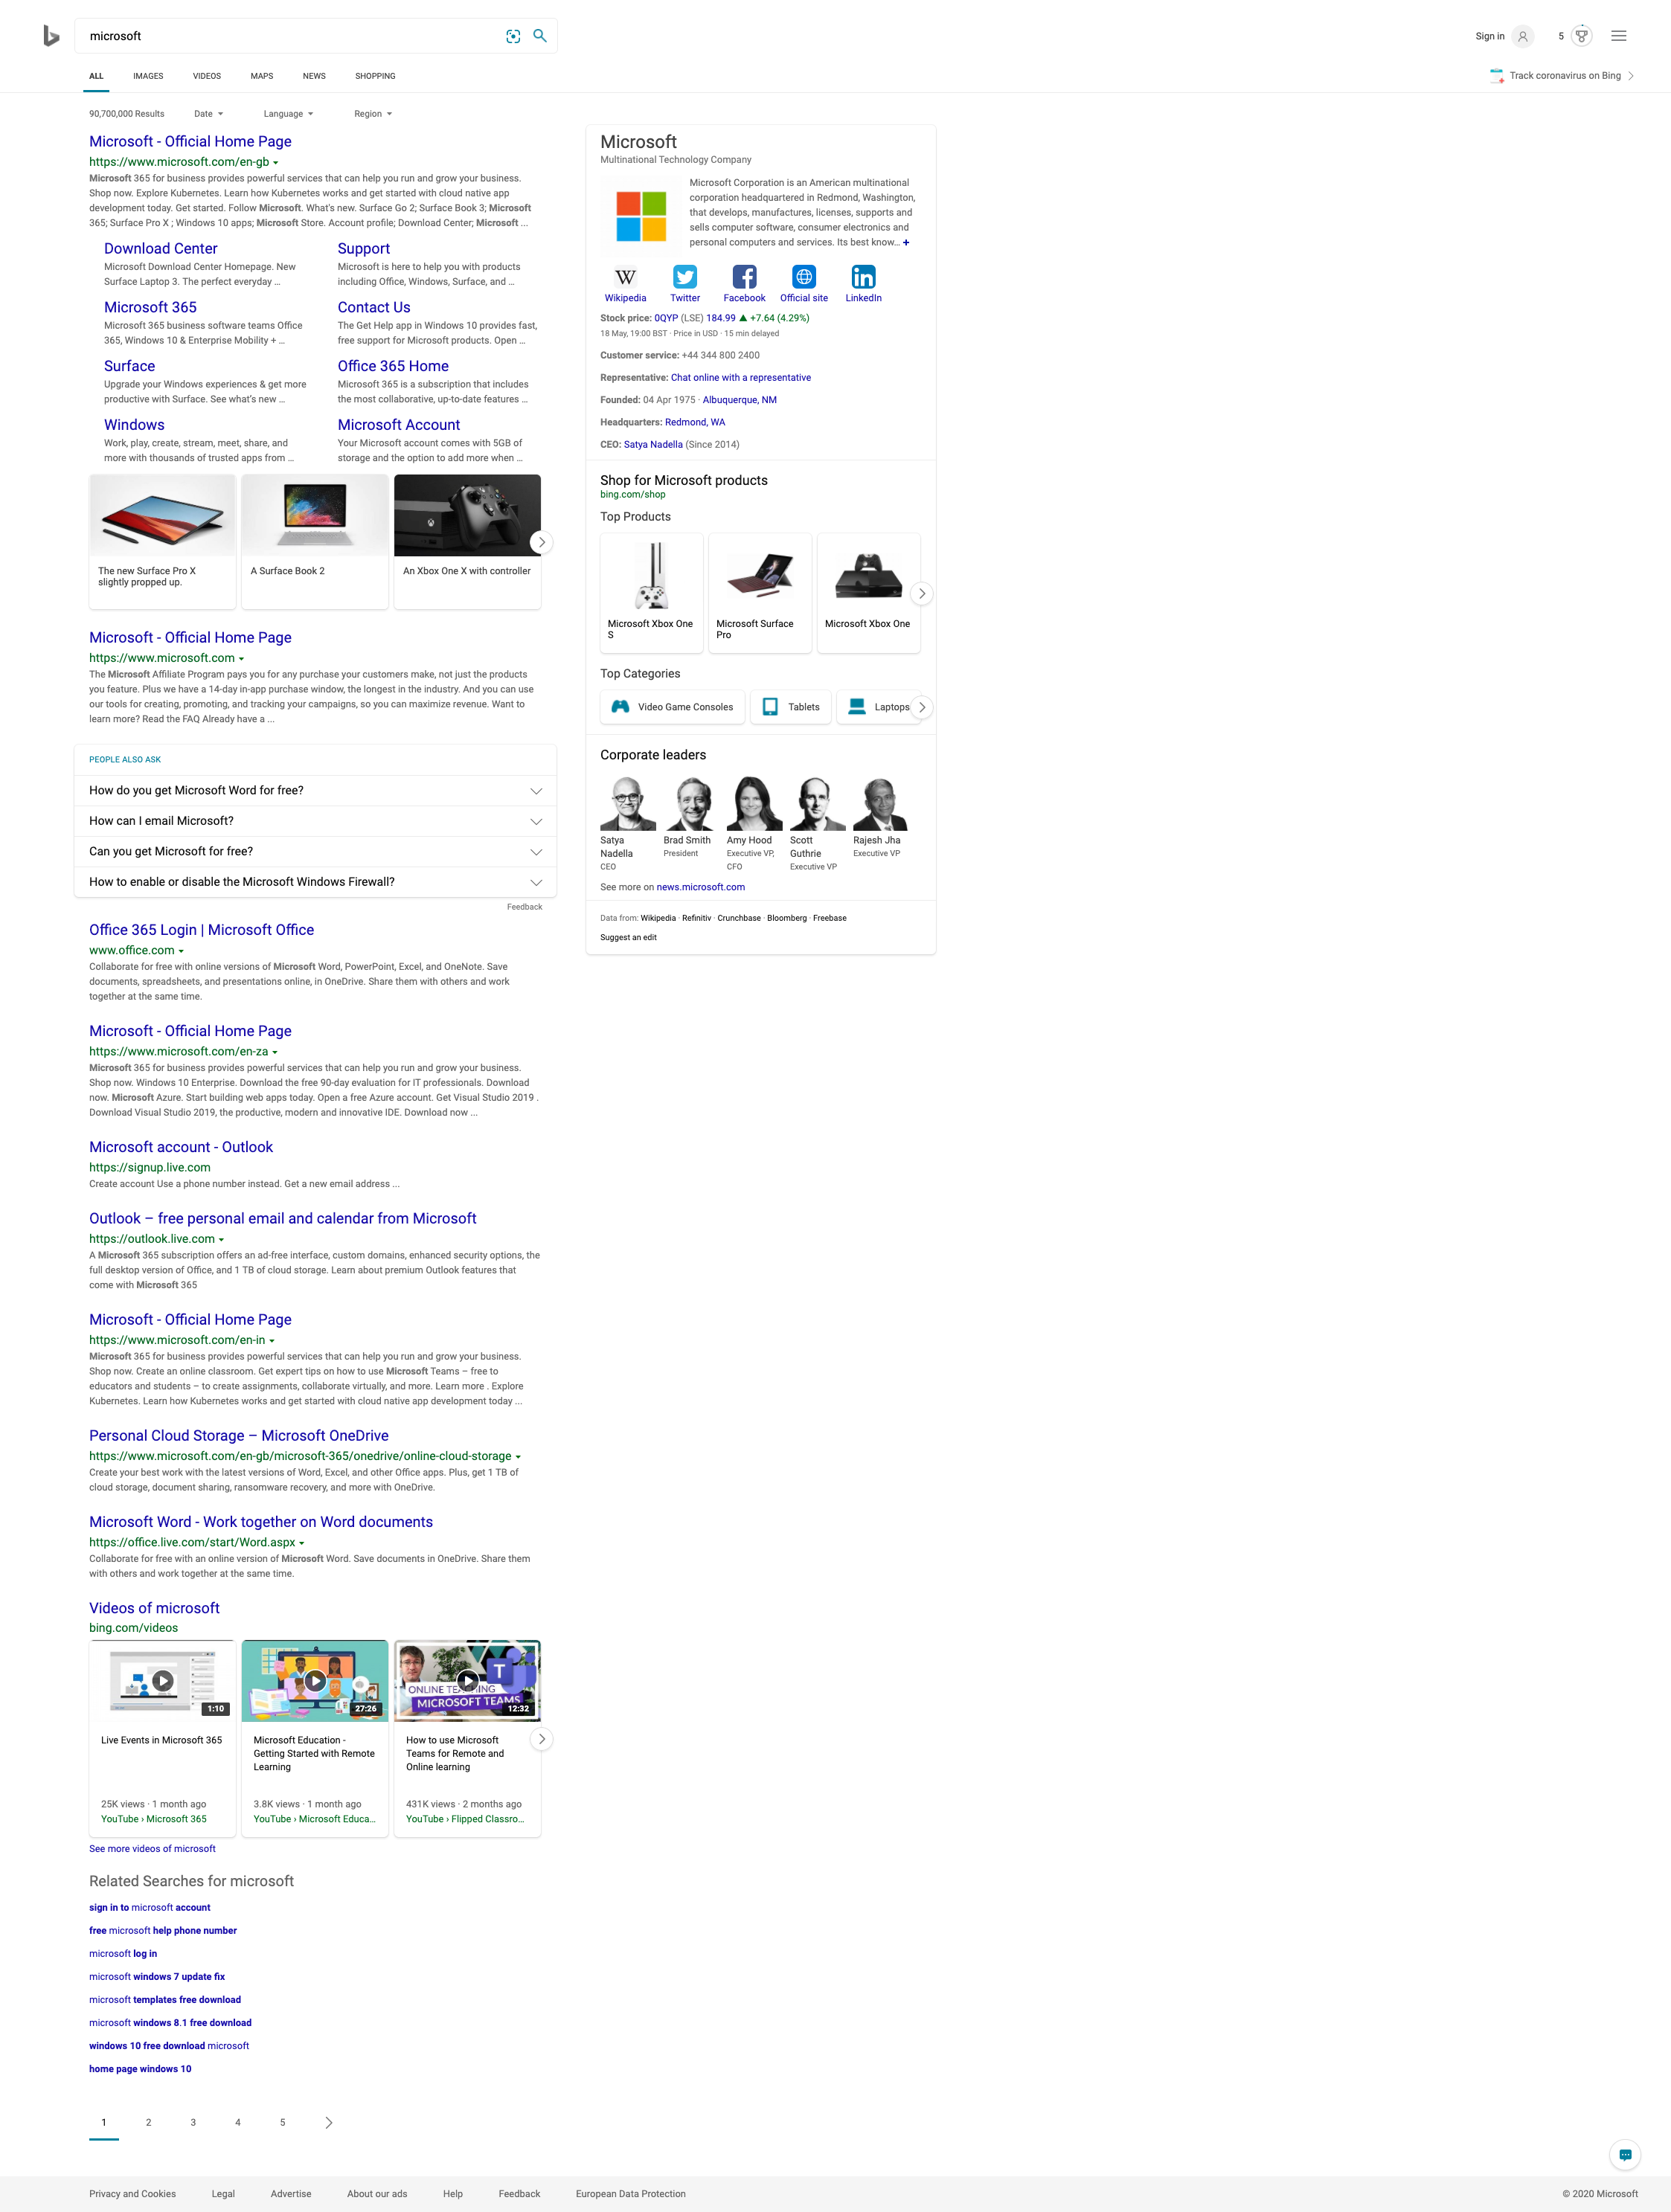 Bing SERP for a search on the word on Microsoft